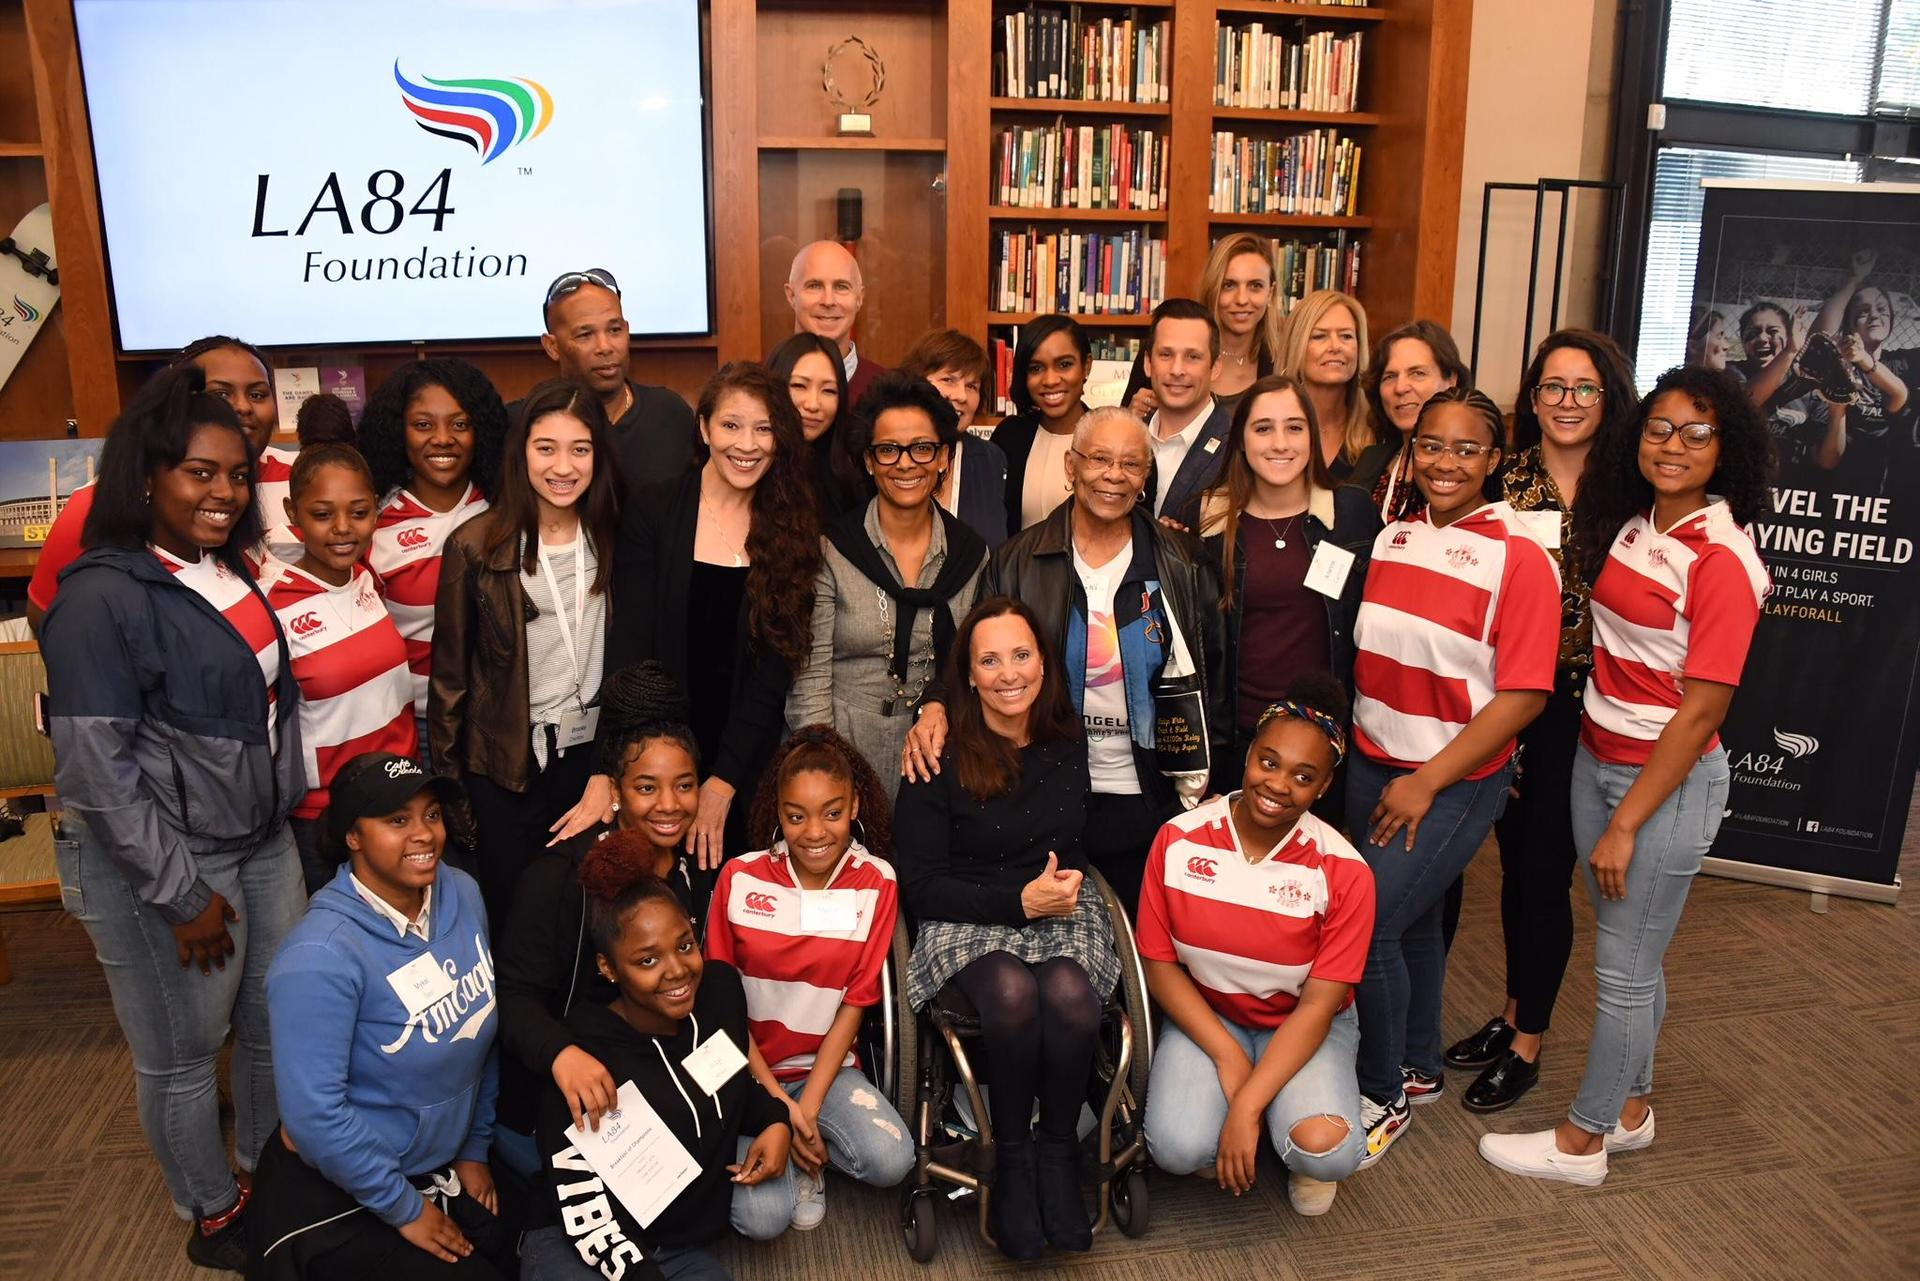 View Park Prep High School Girls with LA84 Foundation CEO Renata Simril celebrating National Girls & Women in Sports Day, 2018.